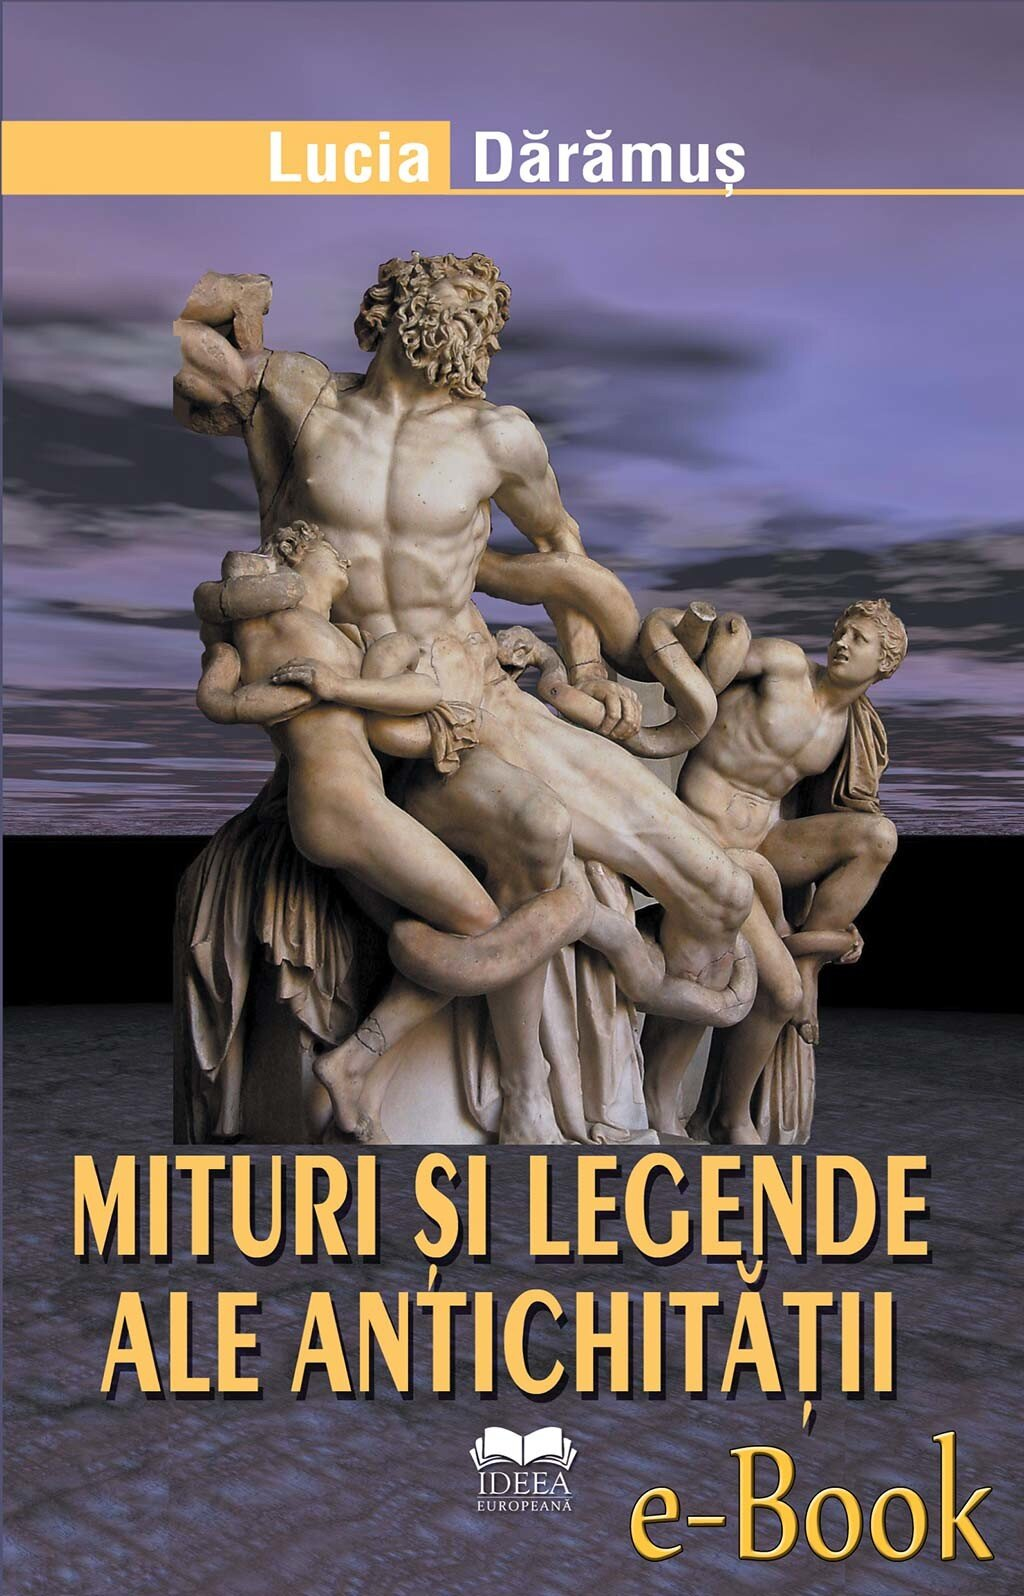 Mituri si legende ale antichitatii (eBook)